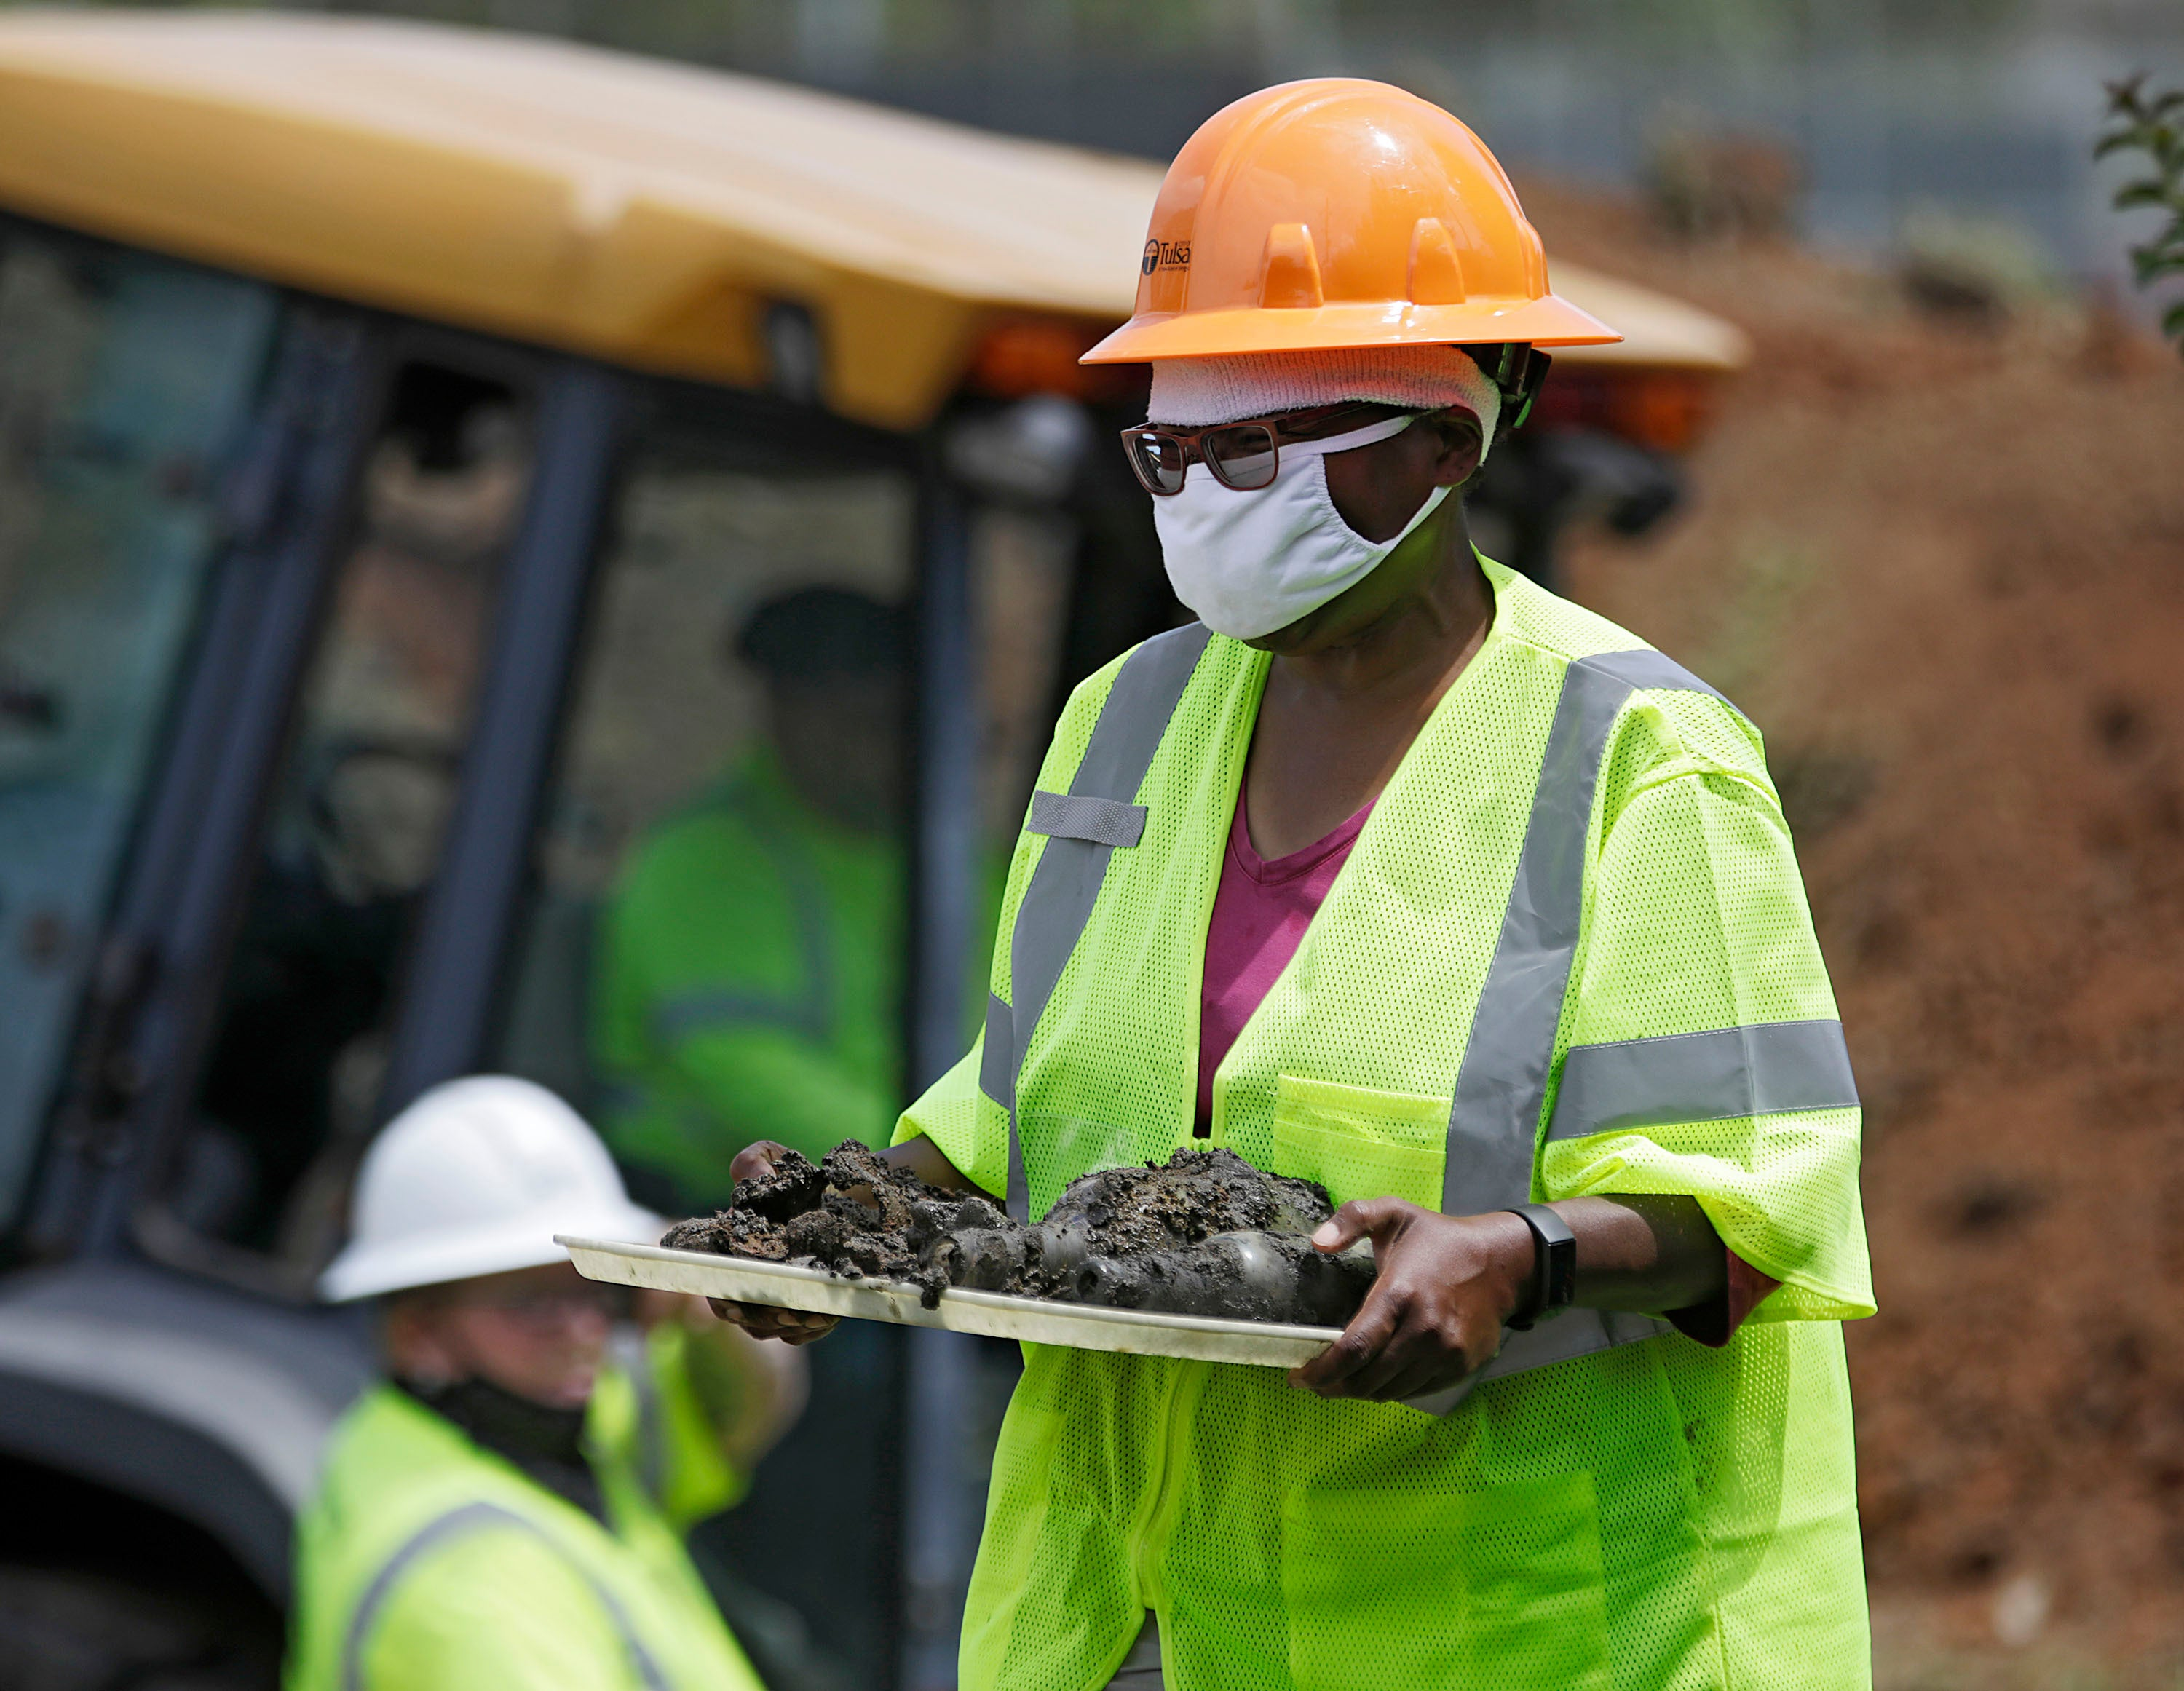 Excavation resumes for victims of 1921 Tulsa race massacre that saw hundreds of African Americans killed - independent